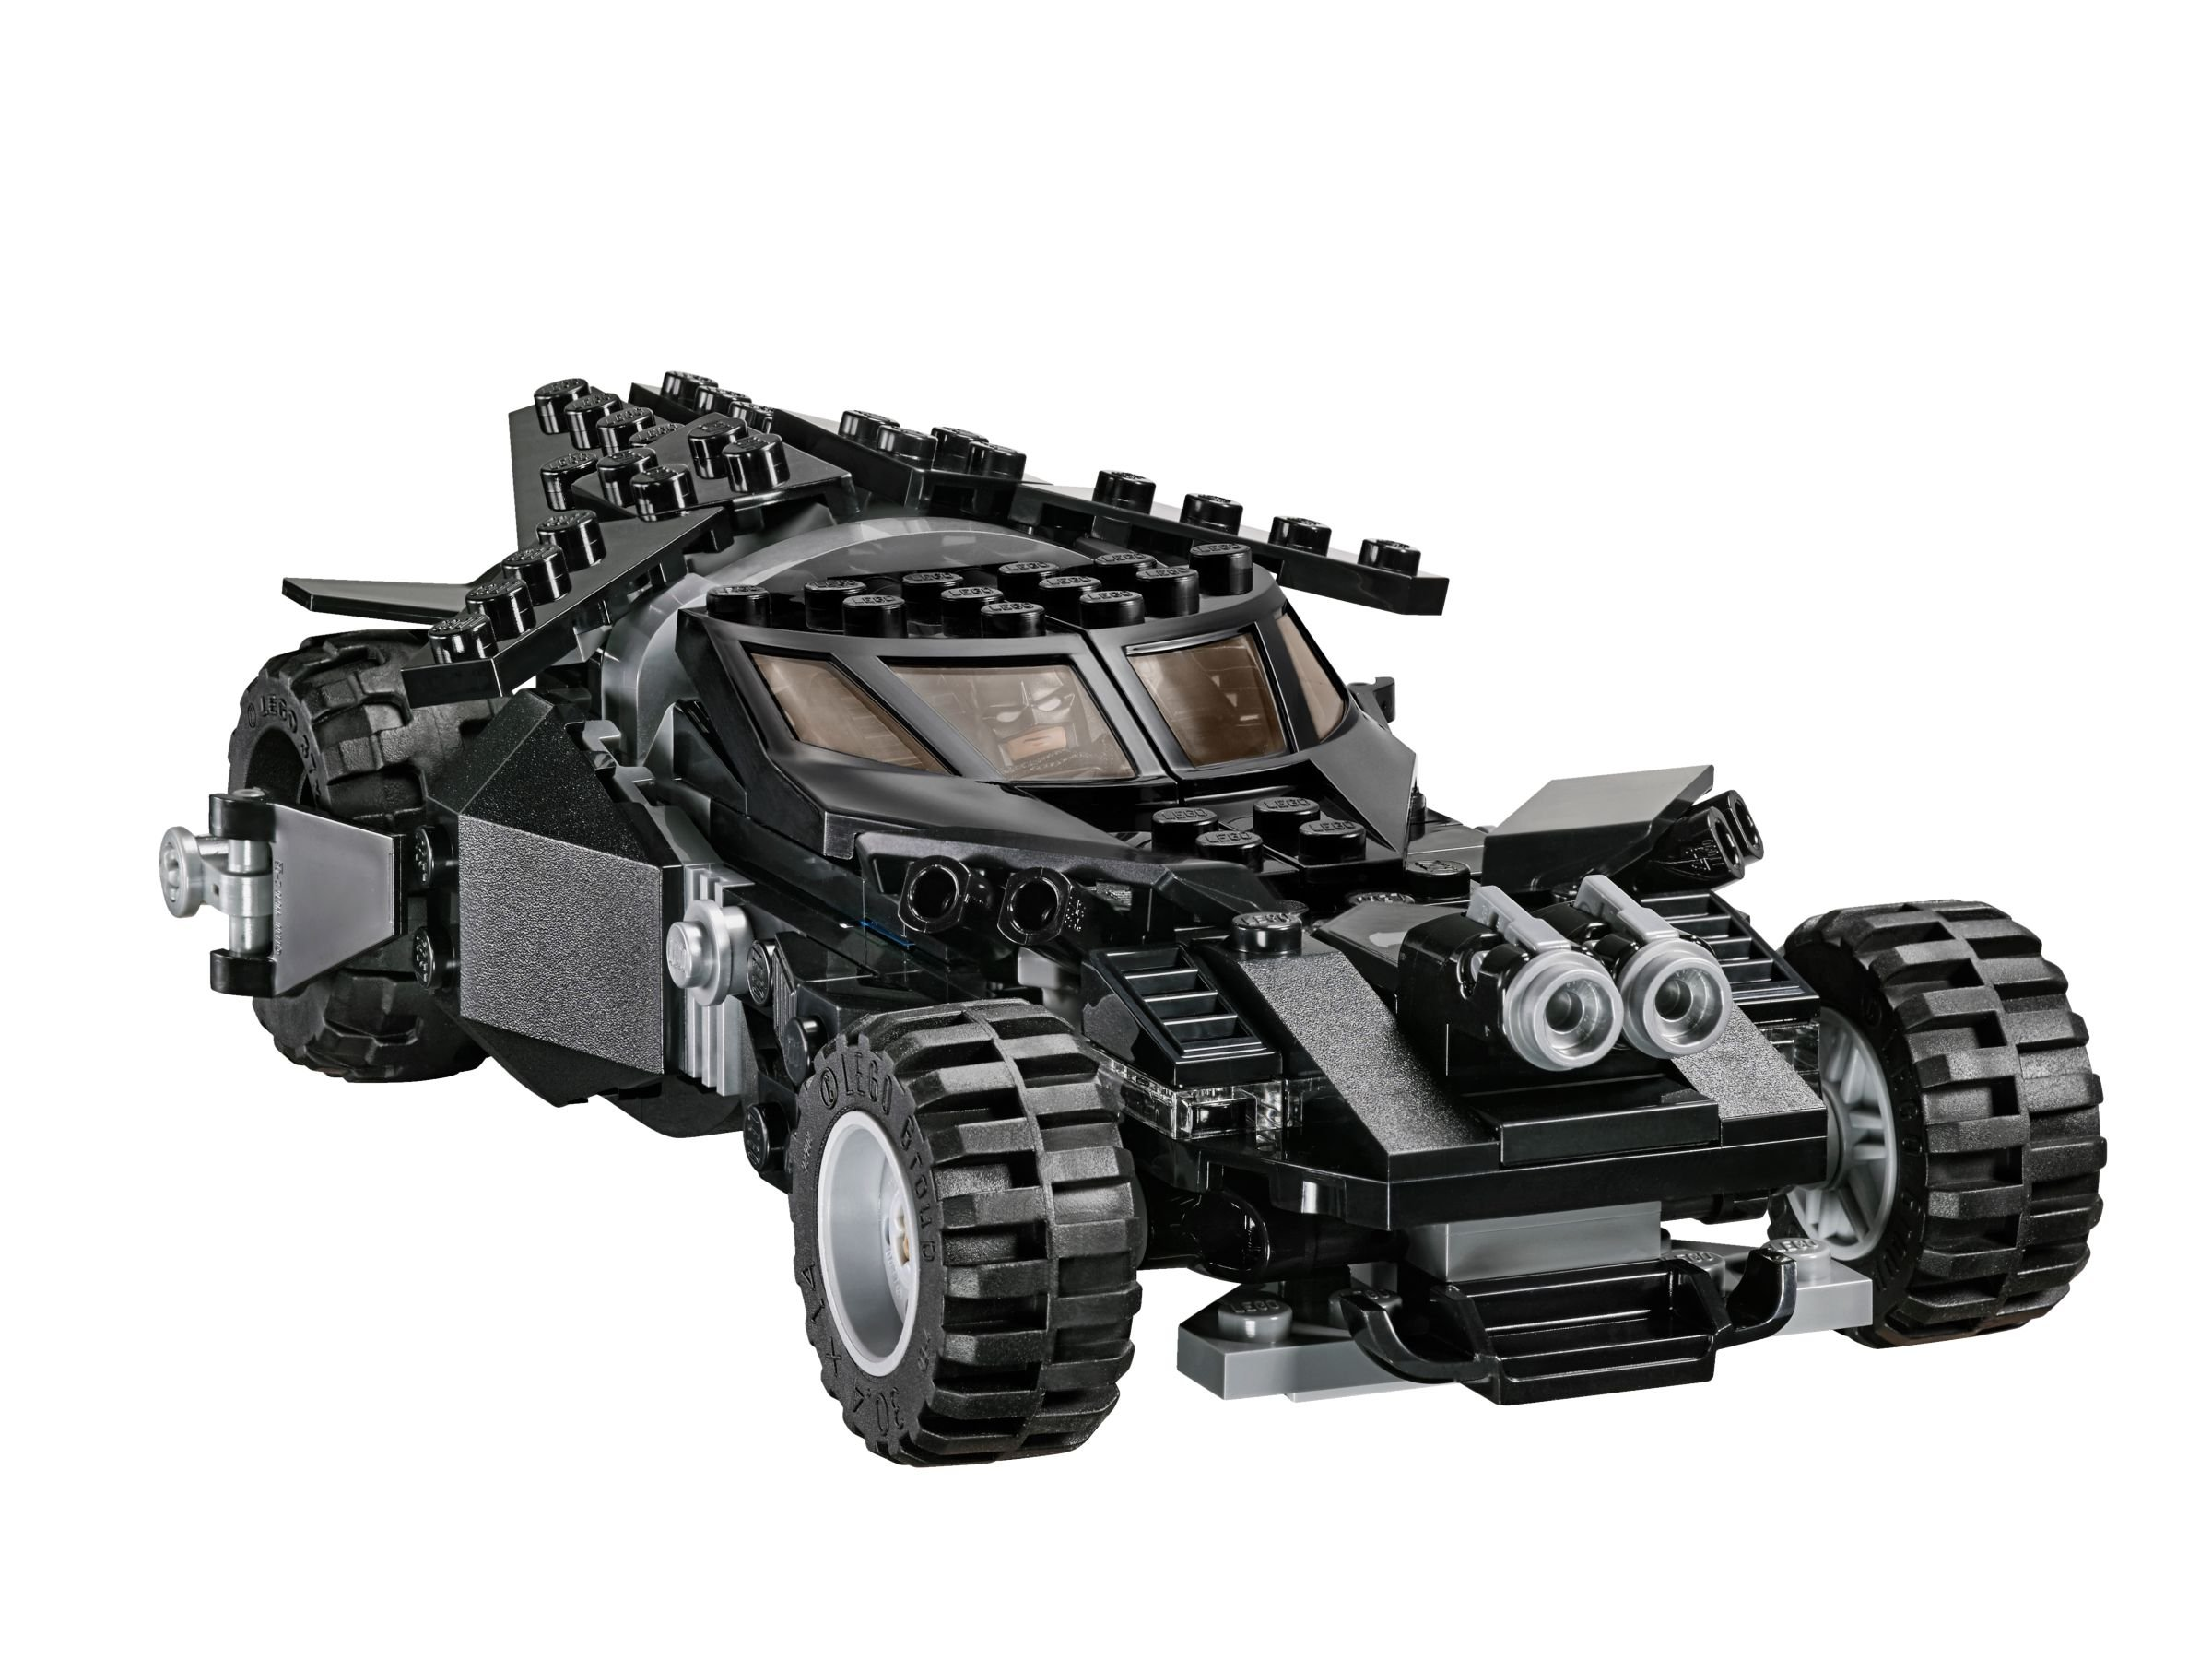 LEGO Super Heroes 76045 Kryptonit-Mission im Batmobil LEGO_76045_alt2.jpg